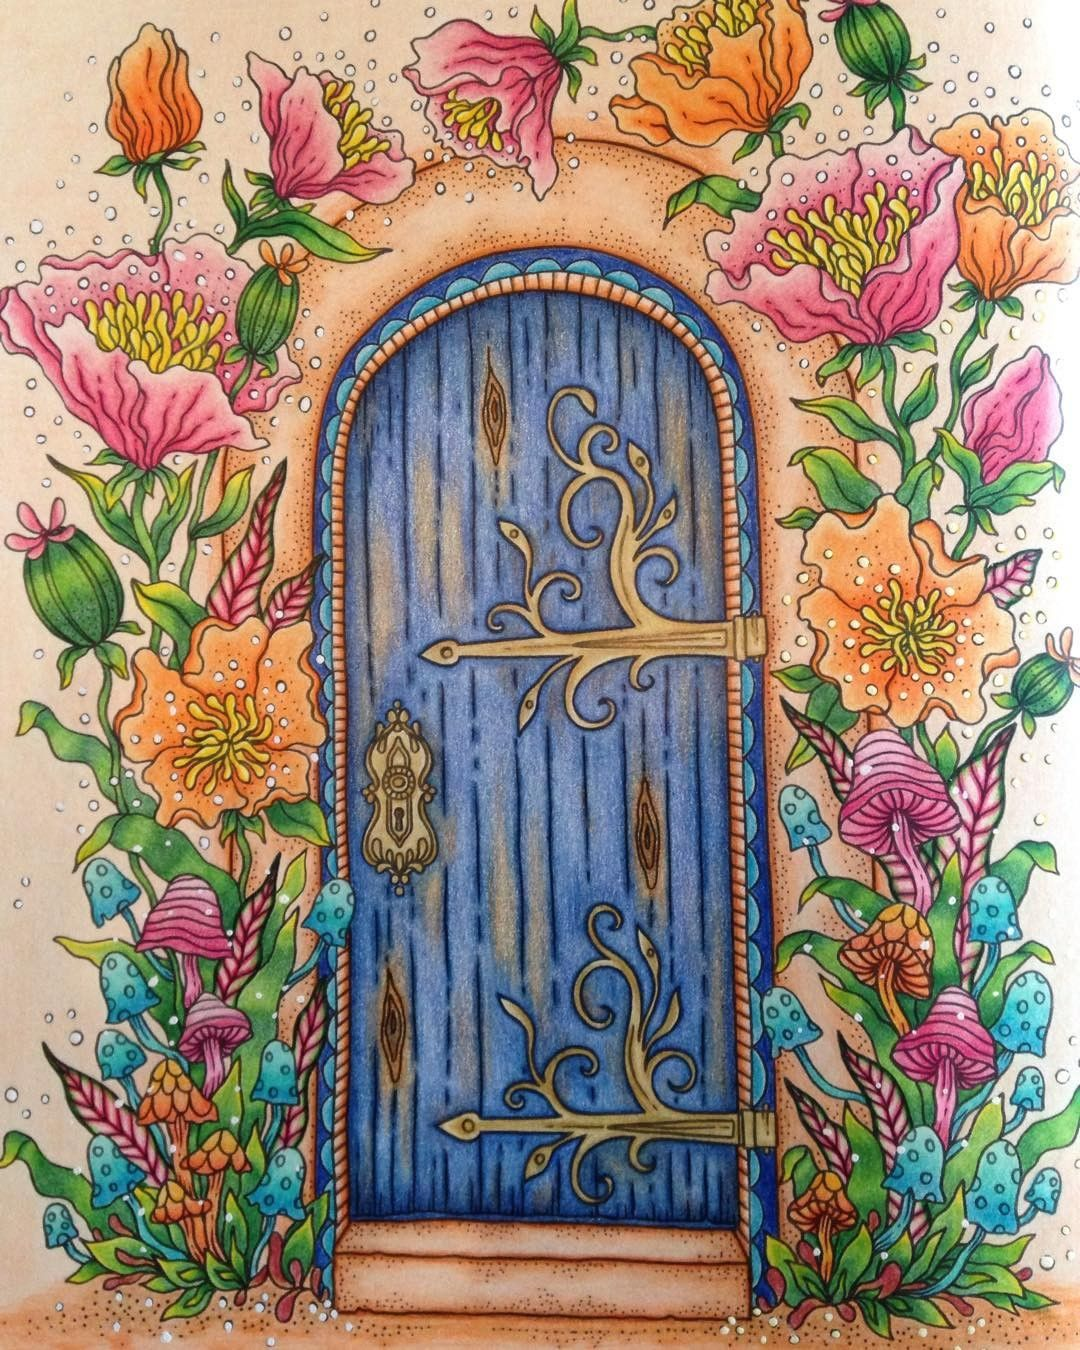 #summernights #hannakarlzon #coloriage #coloring #colouring #coloringbook #livredecoloriage #colouringbook #coloringpage #arttherapie #arttherapy #adultcoloringbook #coloriagepouradulte #colouringadult #coloriageantistress #antistresscoloring #coloredpencil